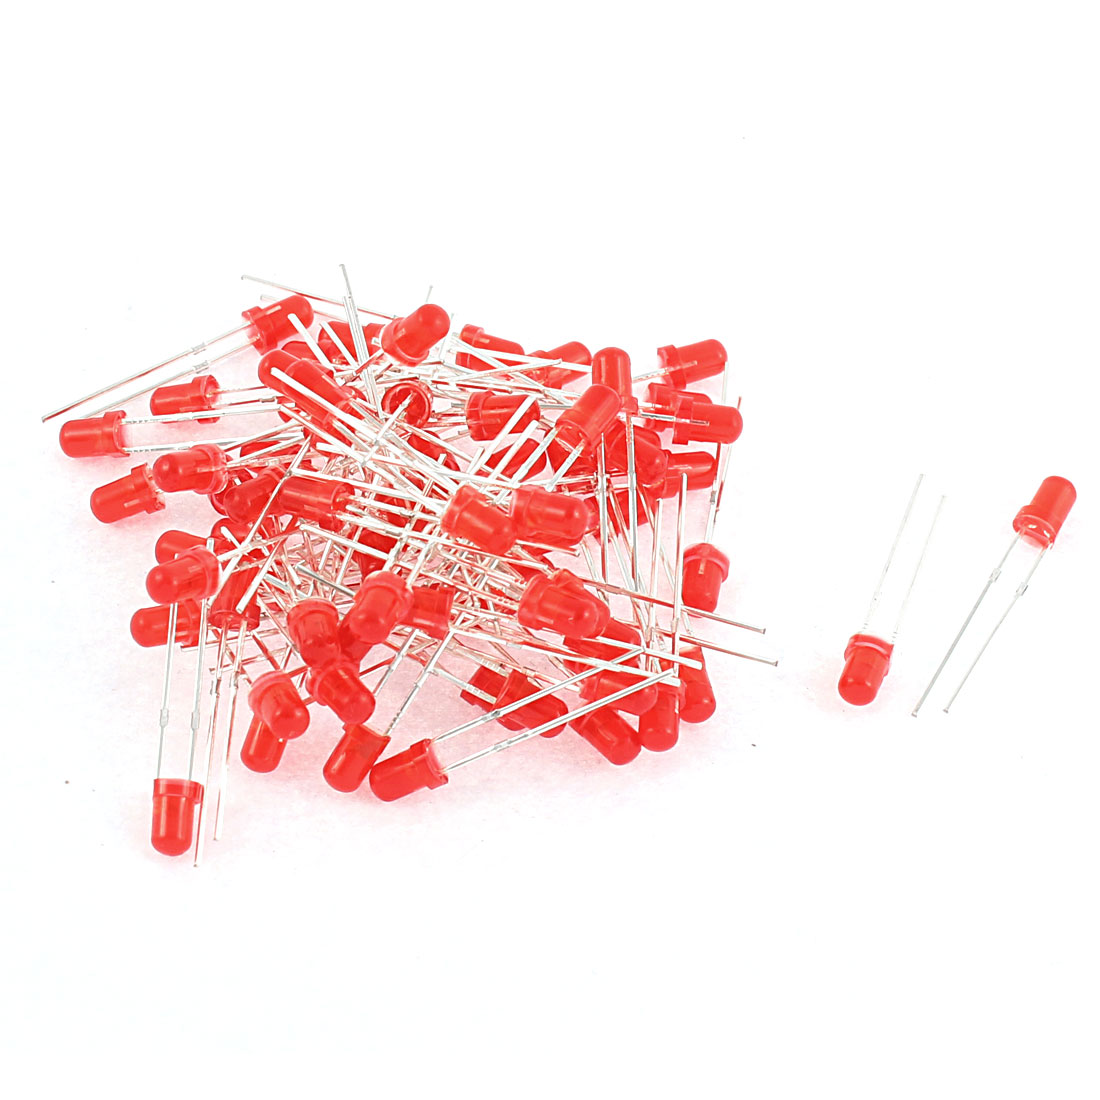 75pcs 3mm Round Head Red LED Light Emitting Diodes Beads Component